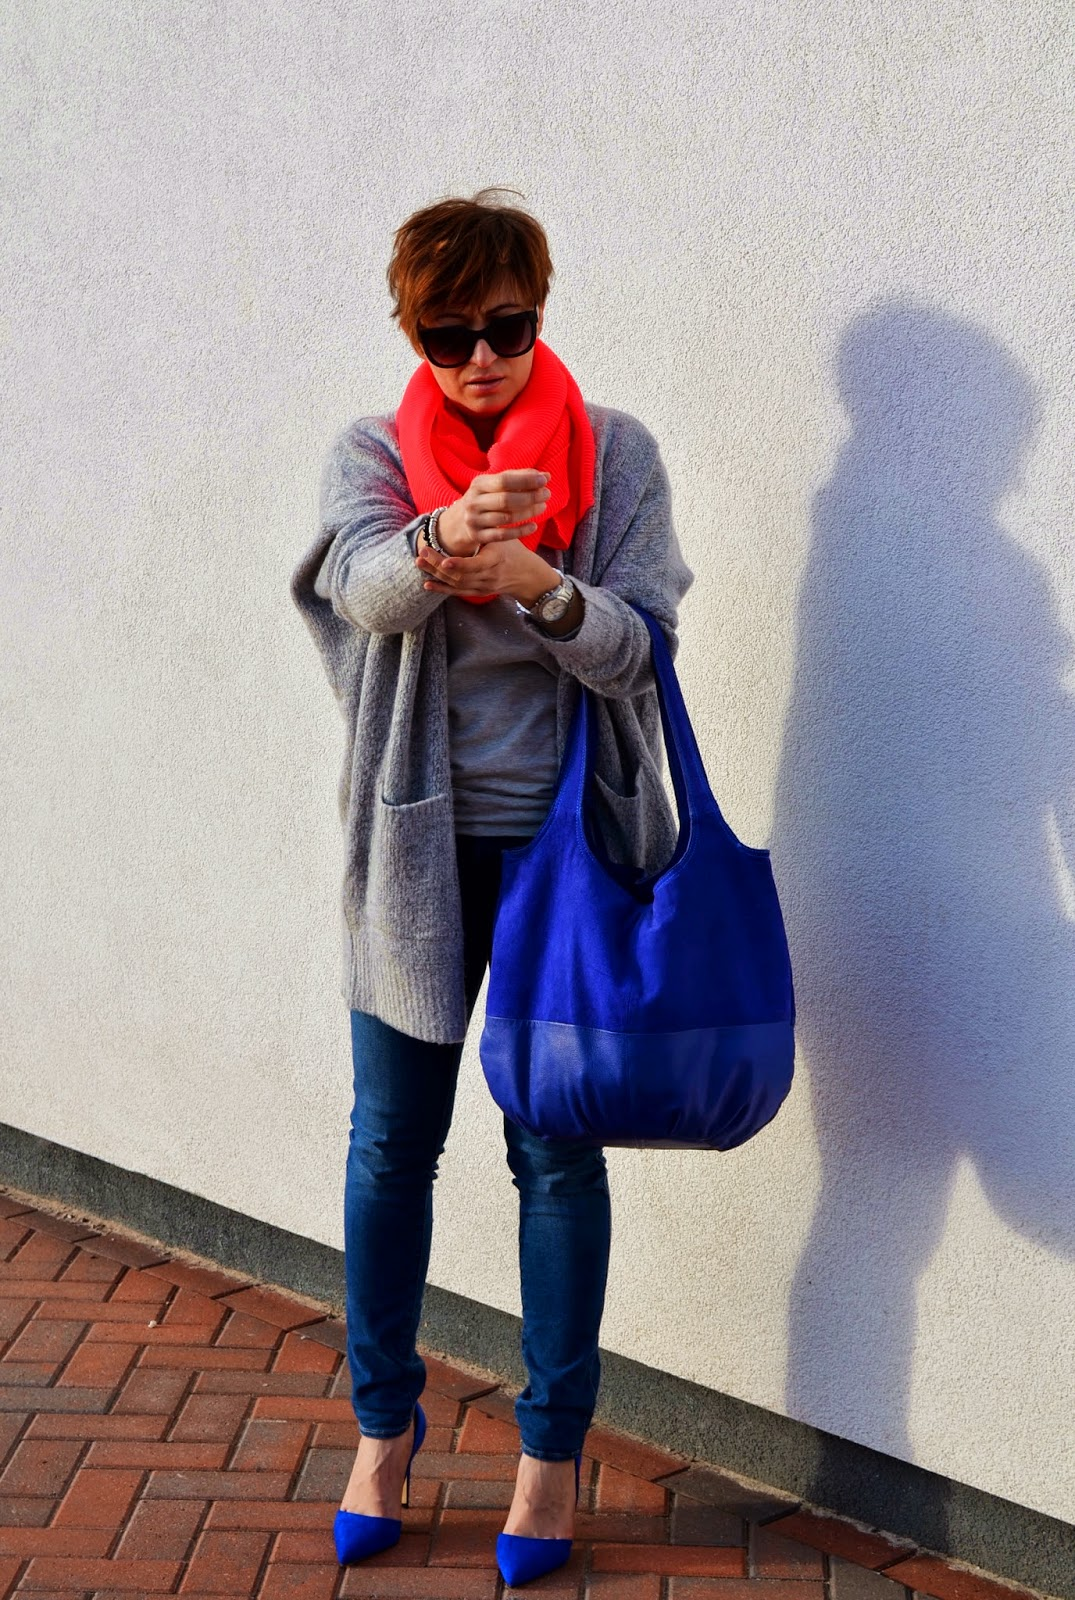 Adriana Style Blog, Big Jumper Oversize Sweater, blog modowy Puławy, Cobalt Heels, Fashion, H&M Coral Scarf, moda, Oversize Jumper, Phenomenal us challenge, Wrangler Jeans,